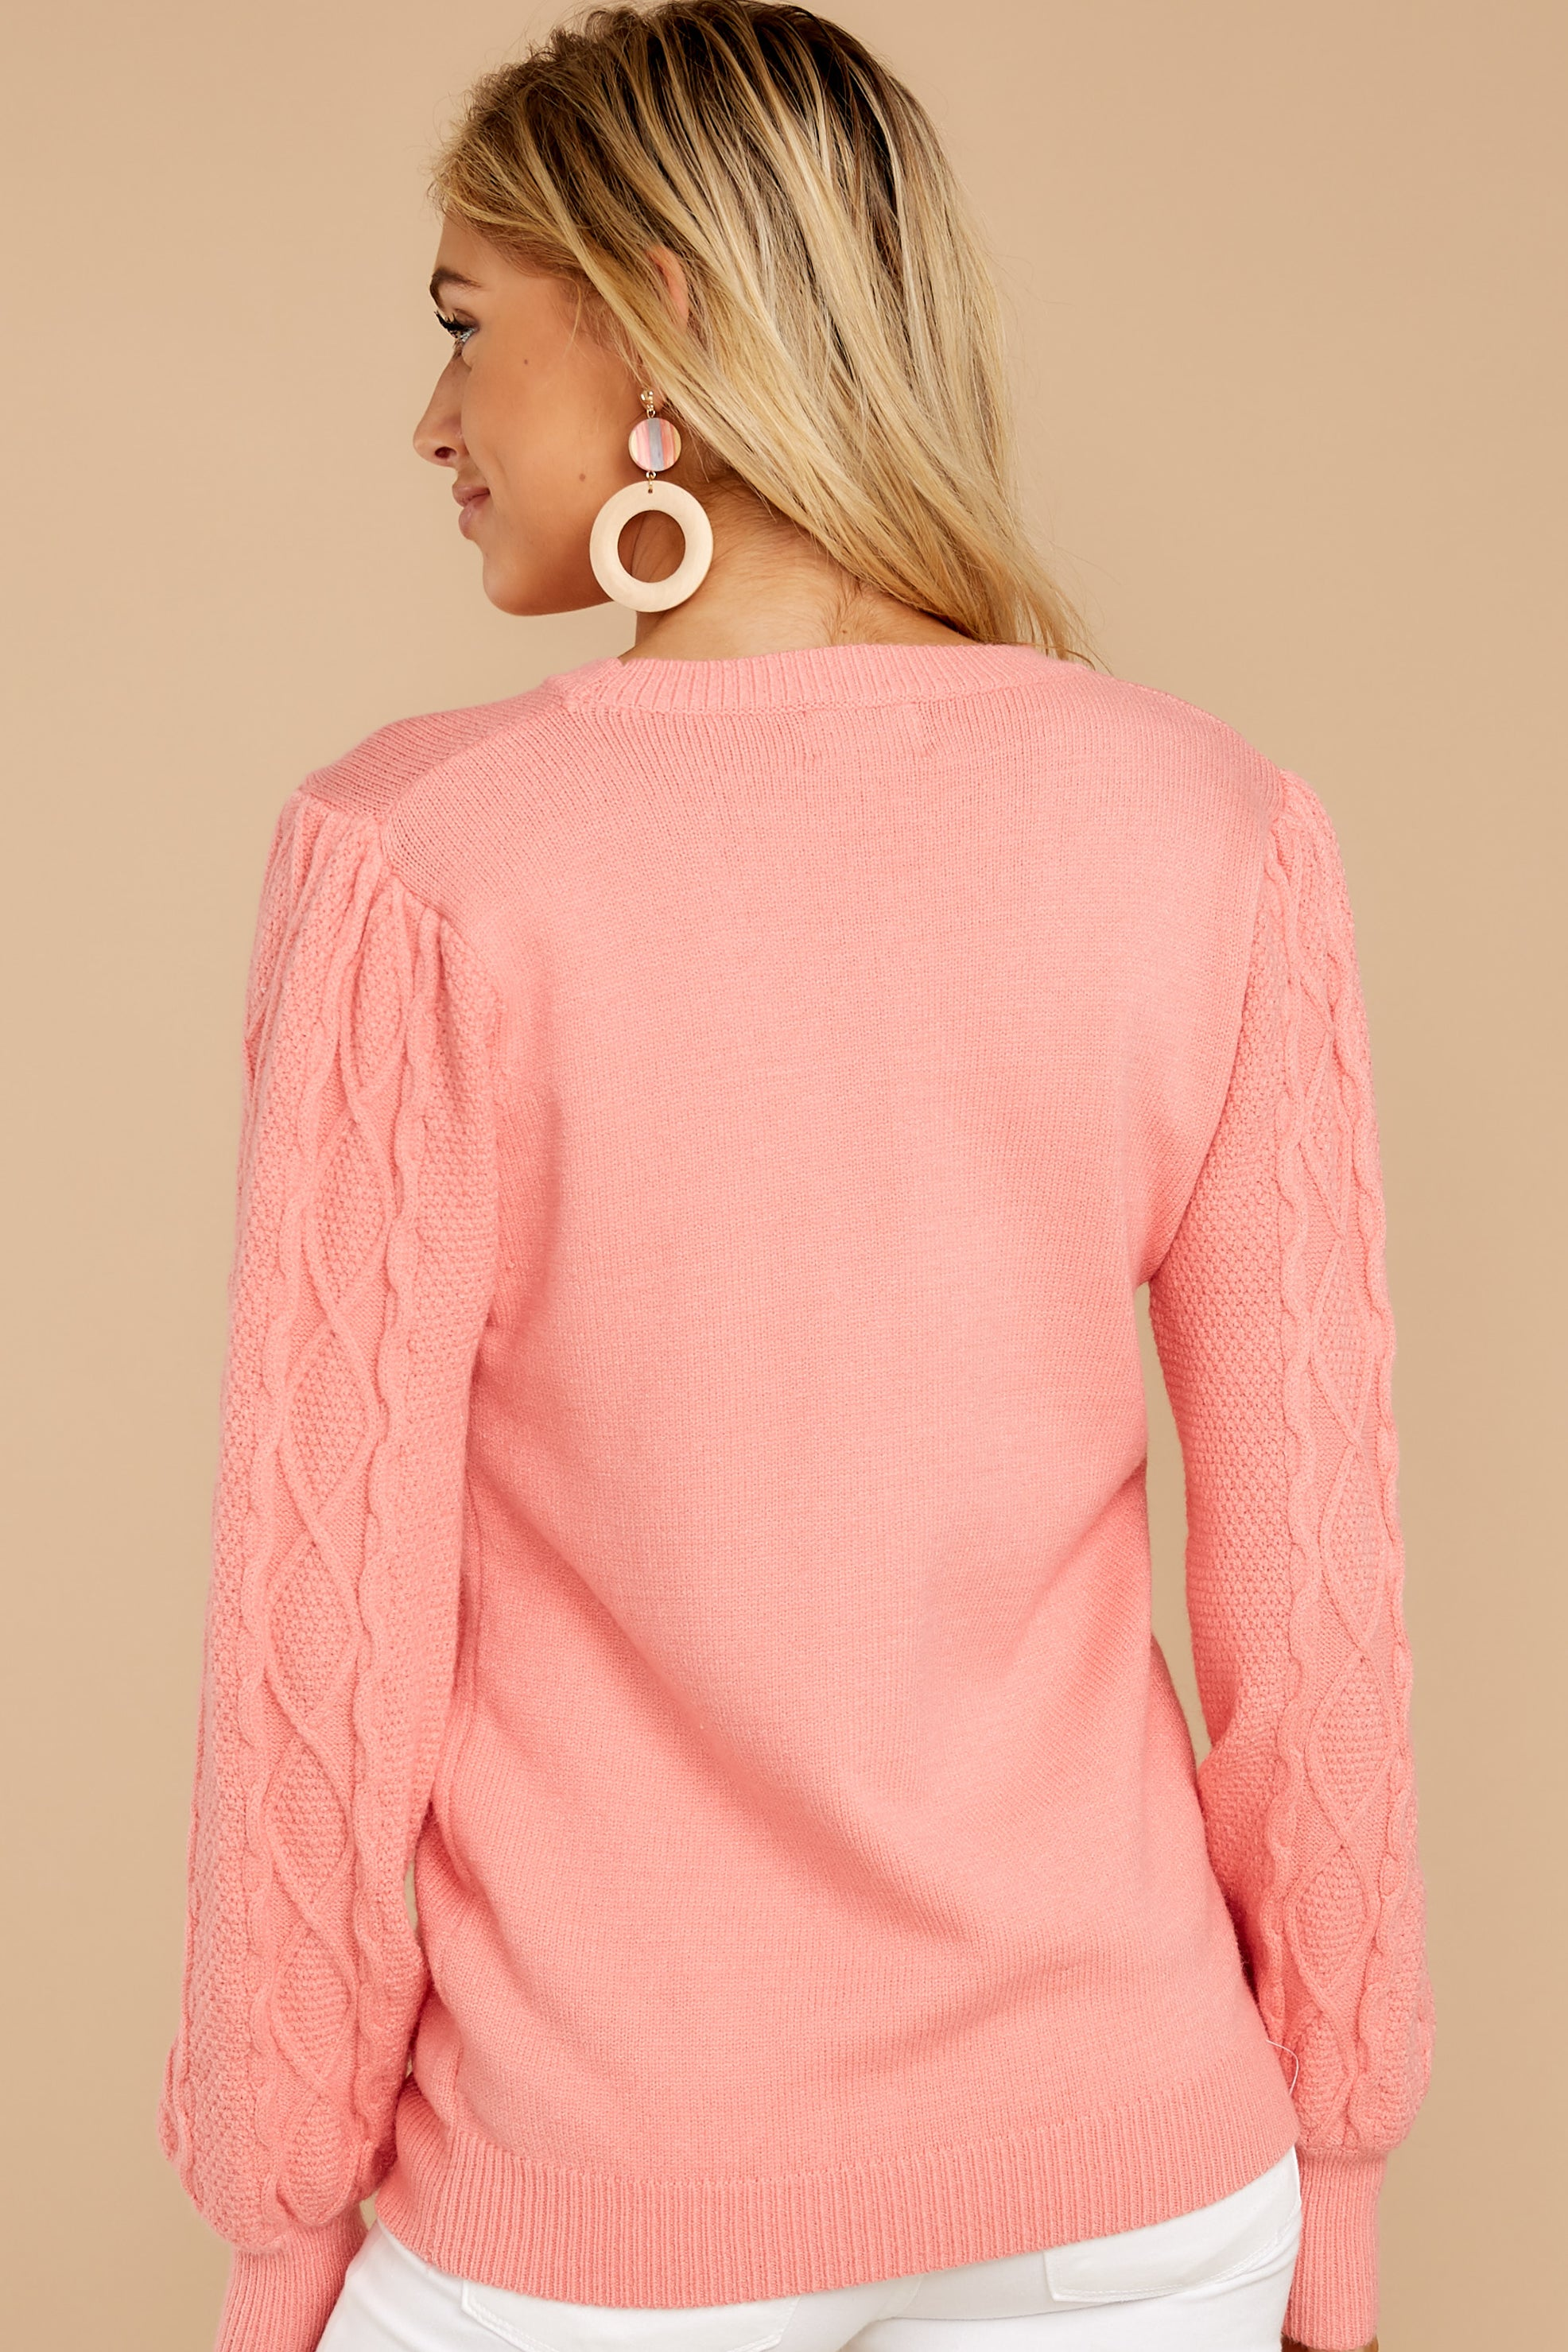 14 Wandering Through Winter Light Pink Sweater at reddressboutique.com